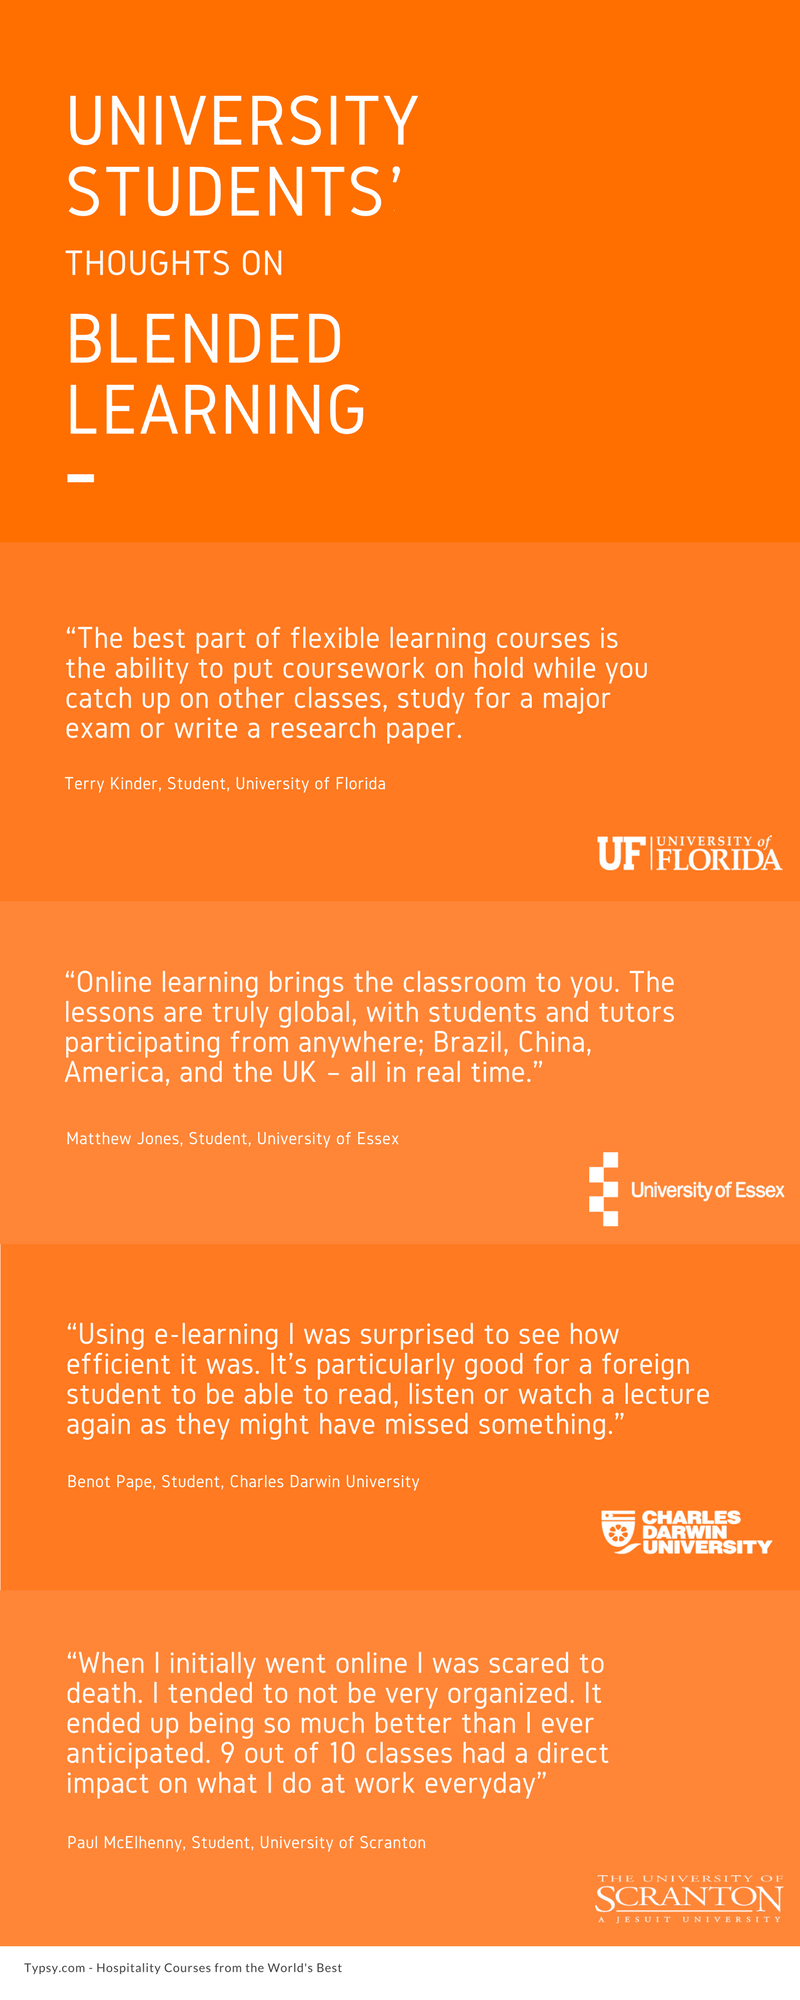 University Students Thoughts on Blended Learning.png